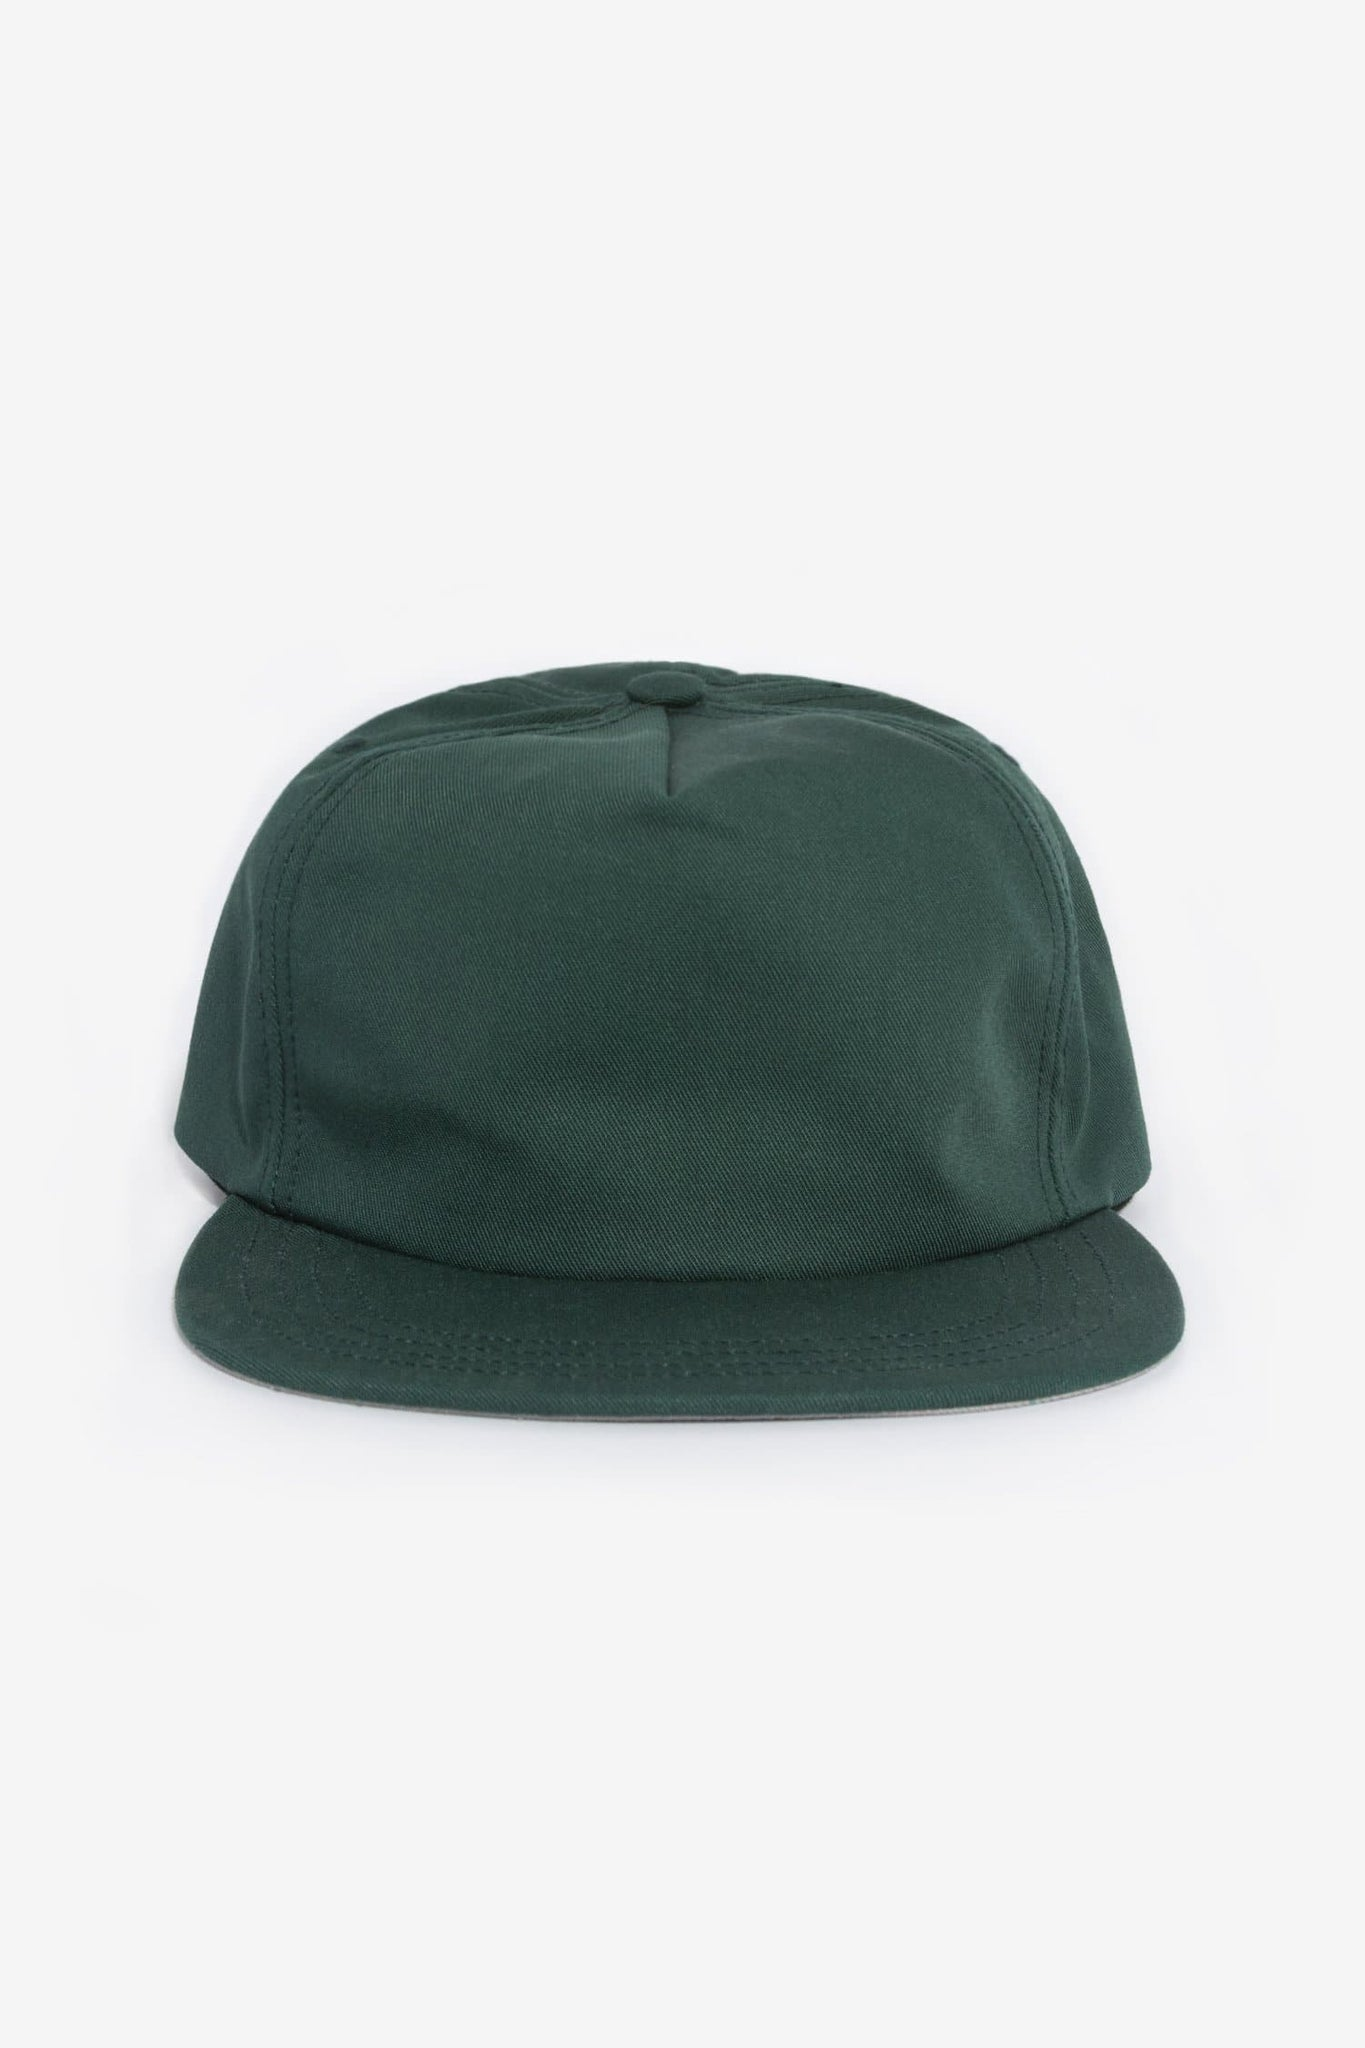 RTWLSB500 - Poly Cotton Twill 5 Panel Hat